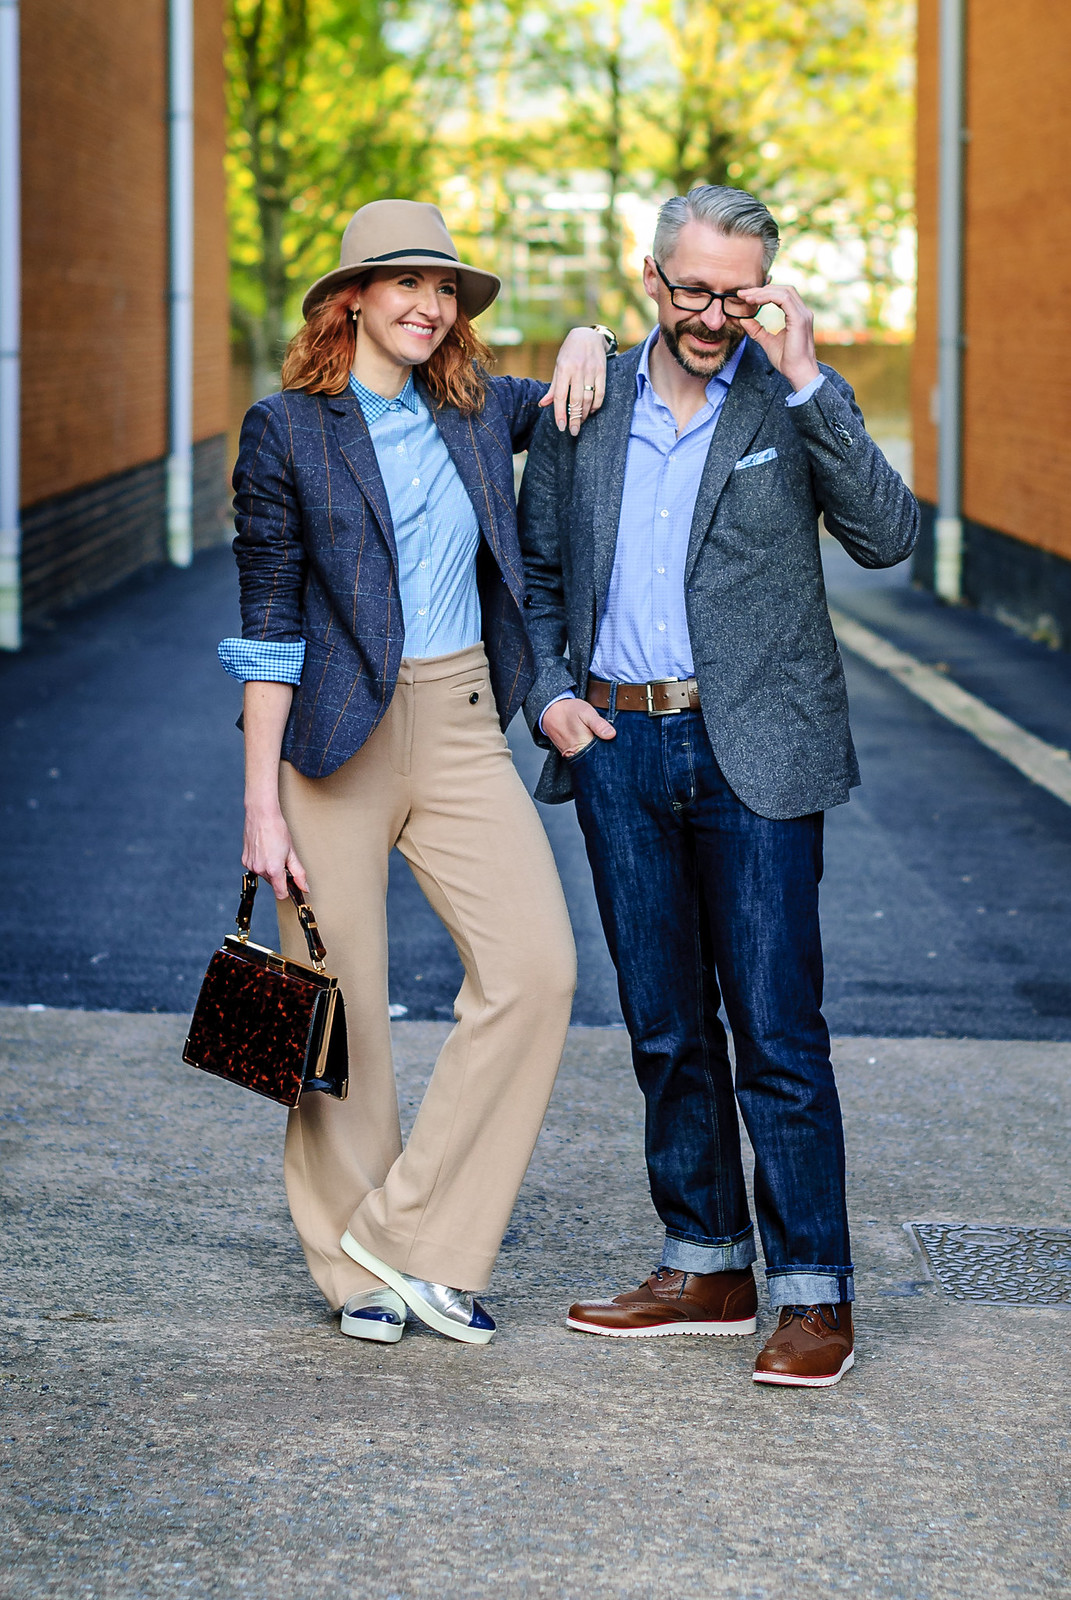 British workwear tailoring by Arthur Shirtley: Smart casual menswear outfit \ tweed blazer \ check shirt \ dark wash straight leg jeans \ brown high top brogues | Silver Londoner, over 40 menswear